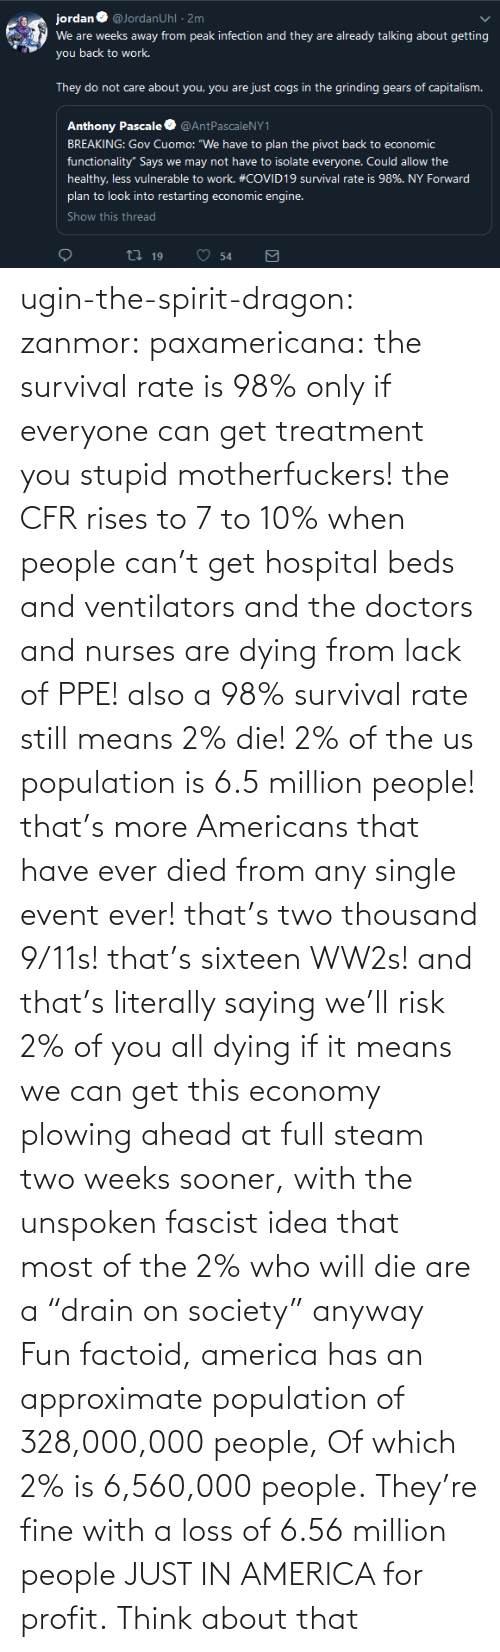 "anyway: ugin-the-spirit-dragon: zanmor:   paxamericana:  the survival rate is 98% only if everyone can get treatment you stupid motherfuckers! the CFR rises to 7 to 10% when people can't get hospital beds and ventilators and the doctors and nurses are dying from lack of PPE!  also a 98% survival rate still means 2% die! 2% of the us population is 6.5 million people! that's more Americans that have ever died from any single event ever! that's two thousand 9/11s! that's sixteen WW2s!  and that's literally saying we'll risk 2% of you all dying if it means we can get this economy plowing ahead at full steam two weeks sooner, with the unspoken fascist idea that most of the 2% who will die are a ""drain on society"" anyway    Fun factoid, america has an approximate population of 328,000,000 people,  Of which 2% is 6,560,000 people. They're fine with a loss of 6.56 million people JUST IN AMERICA for profit. Think about that"